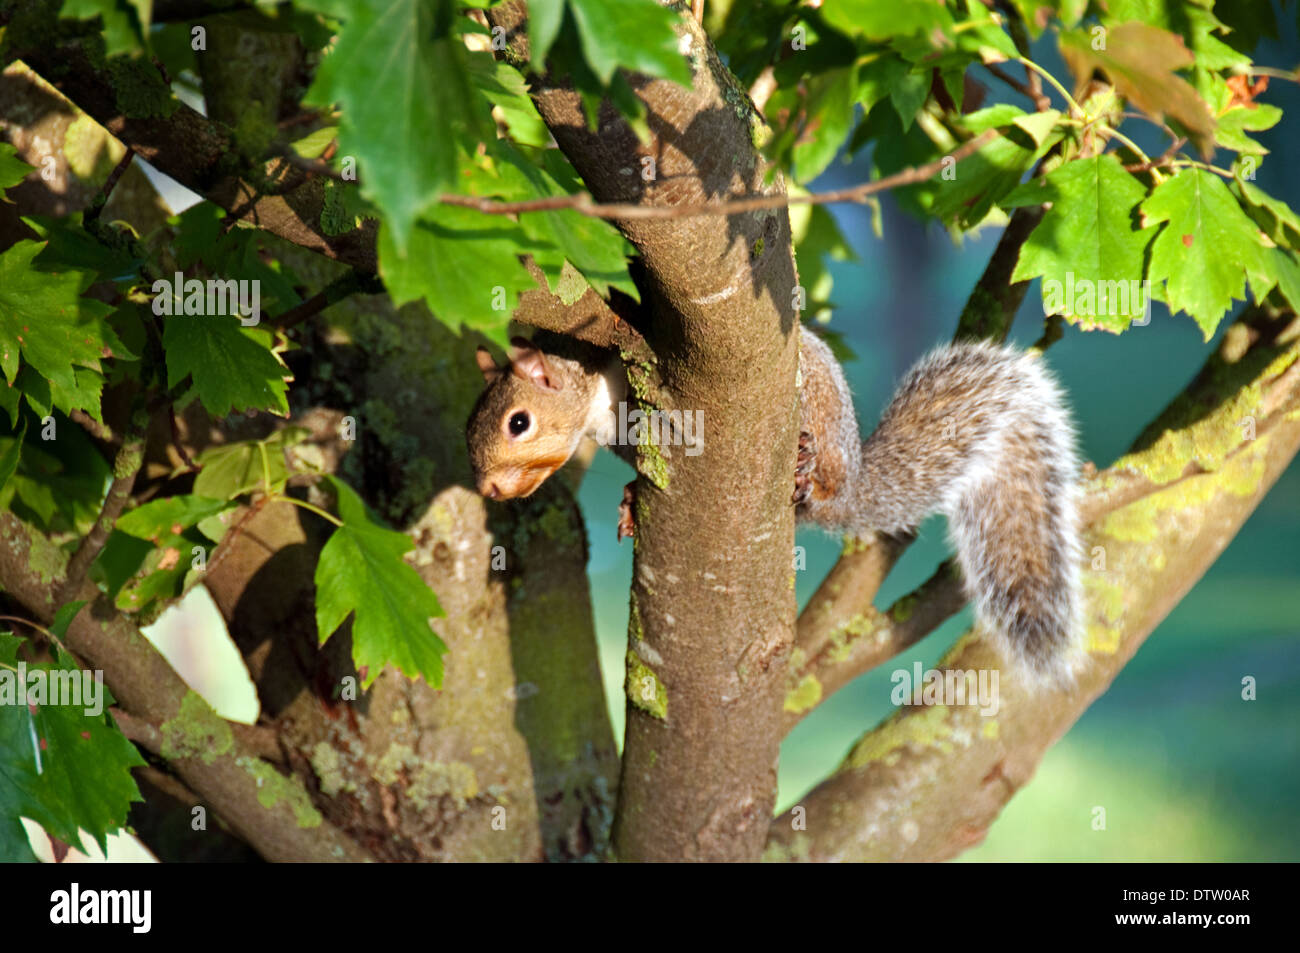 Squirrel in branches of tree - Stock Image